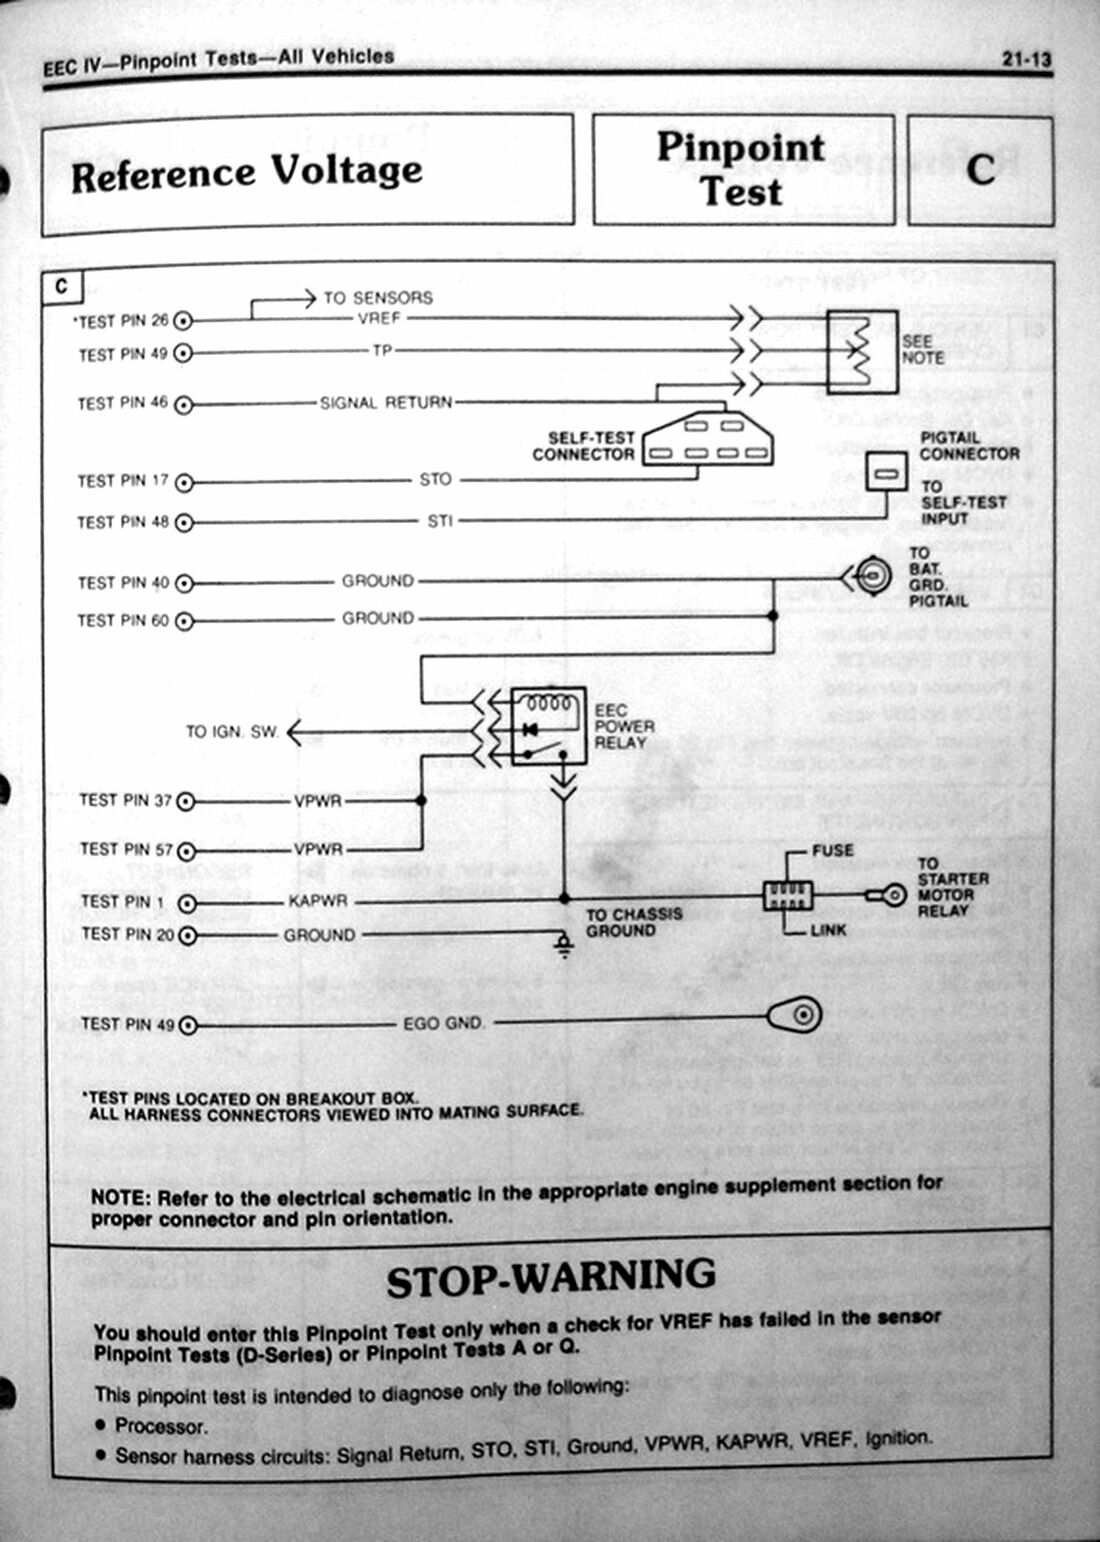 small resolution of eec iv wiring diagram 4 9 advance wiring diagram eec iv wiring diagram 4 9